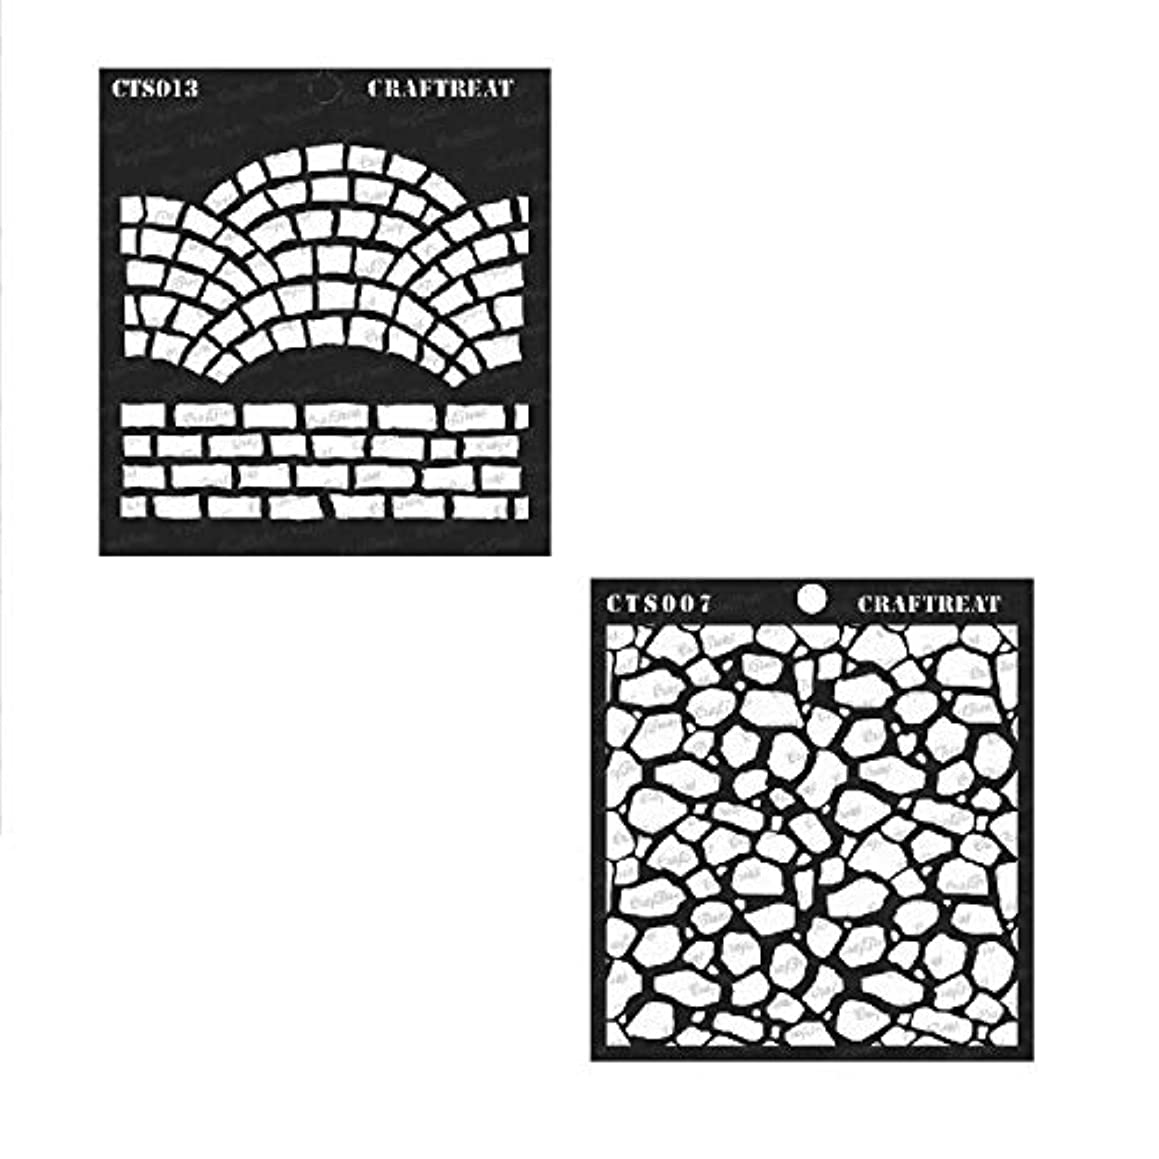 CrafTreat Stencil - Fancy Bricks & Stone Background (2 pcs) | Reusable Painting Template for Home Decor, Crafting, DIY Albums, Scrapbook and Printing on Paper, Floor, Wall, Fabric, Wood 6